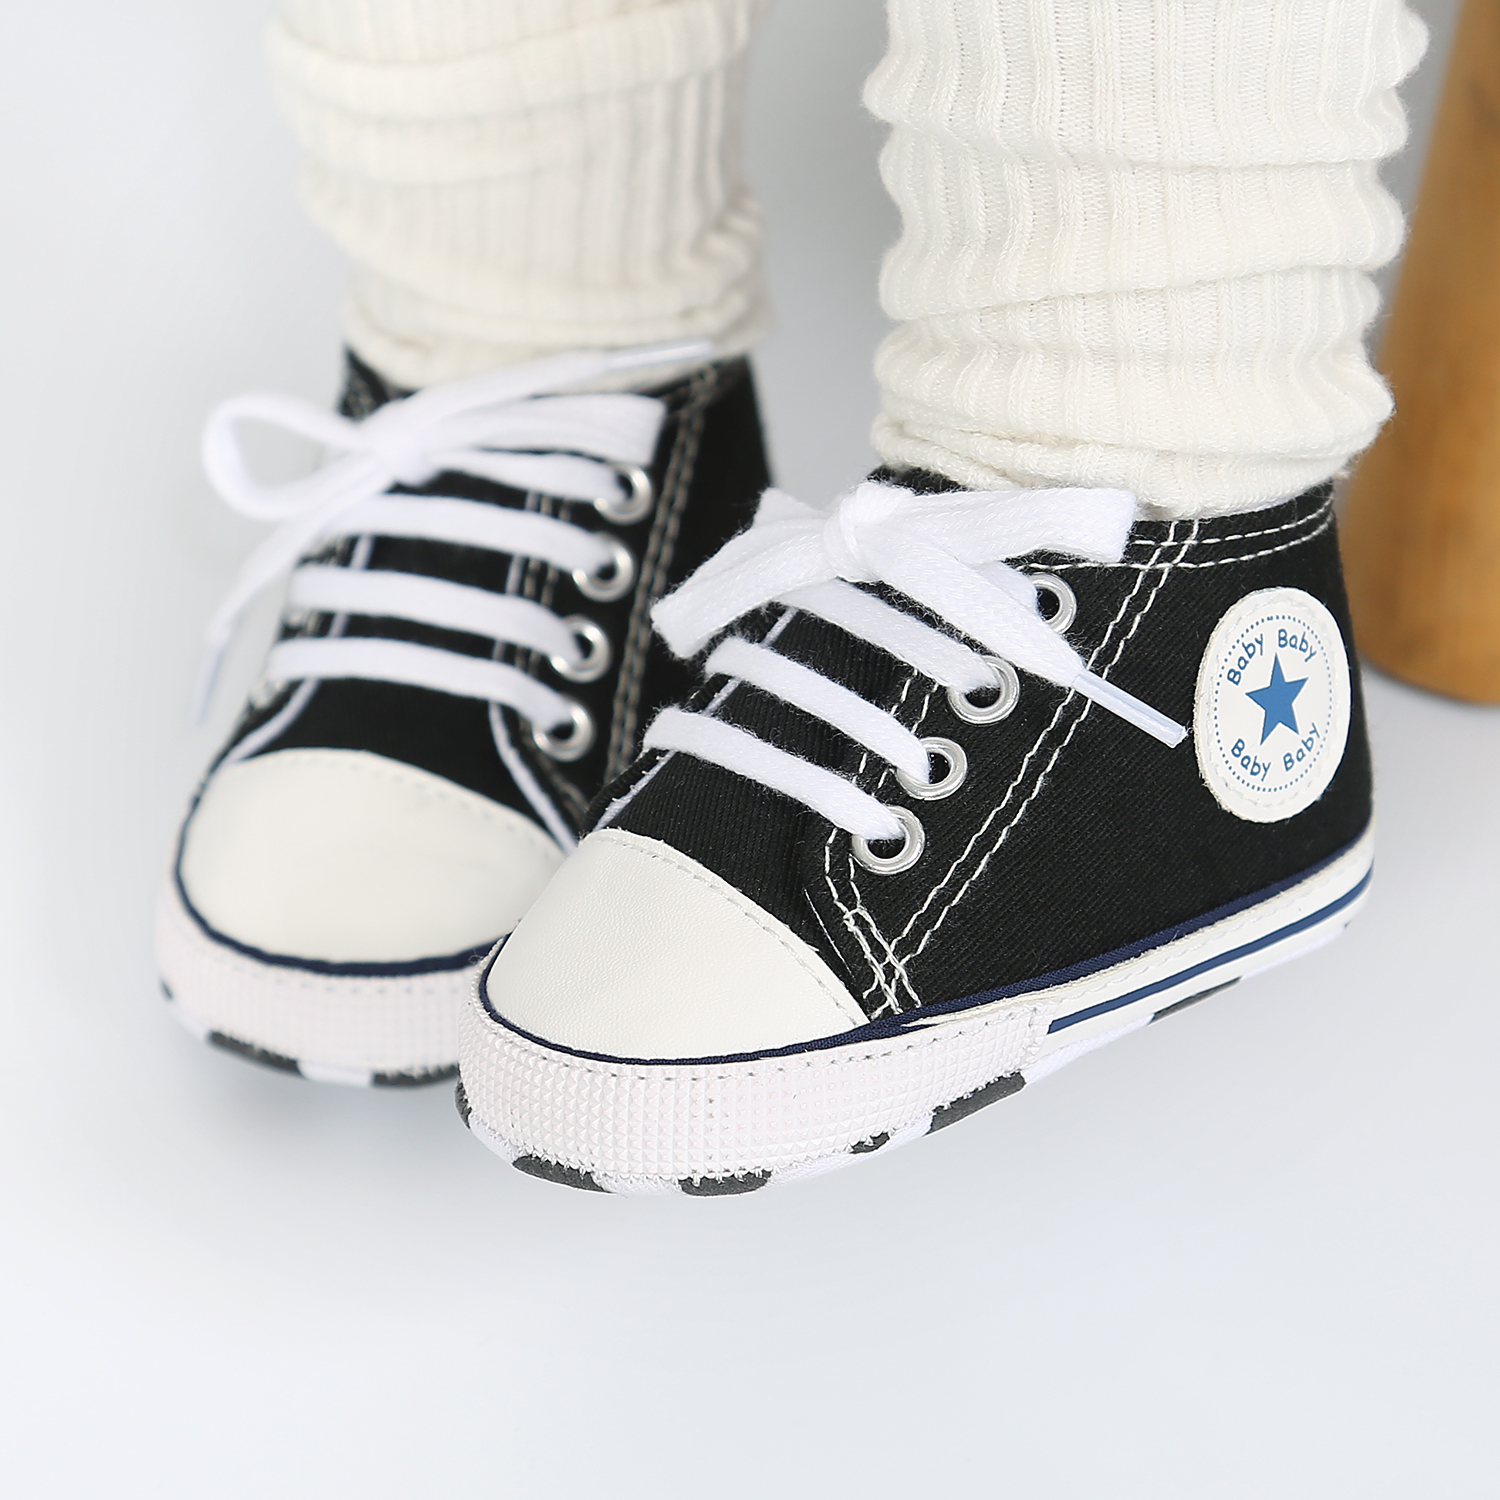 Newborn Boy Girl Shoes First Walkers Infant Baby Shoes White Soft Anti-Slip Sole Unisex Toddler Casual Canvas Crib Shoes 4